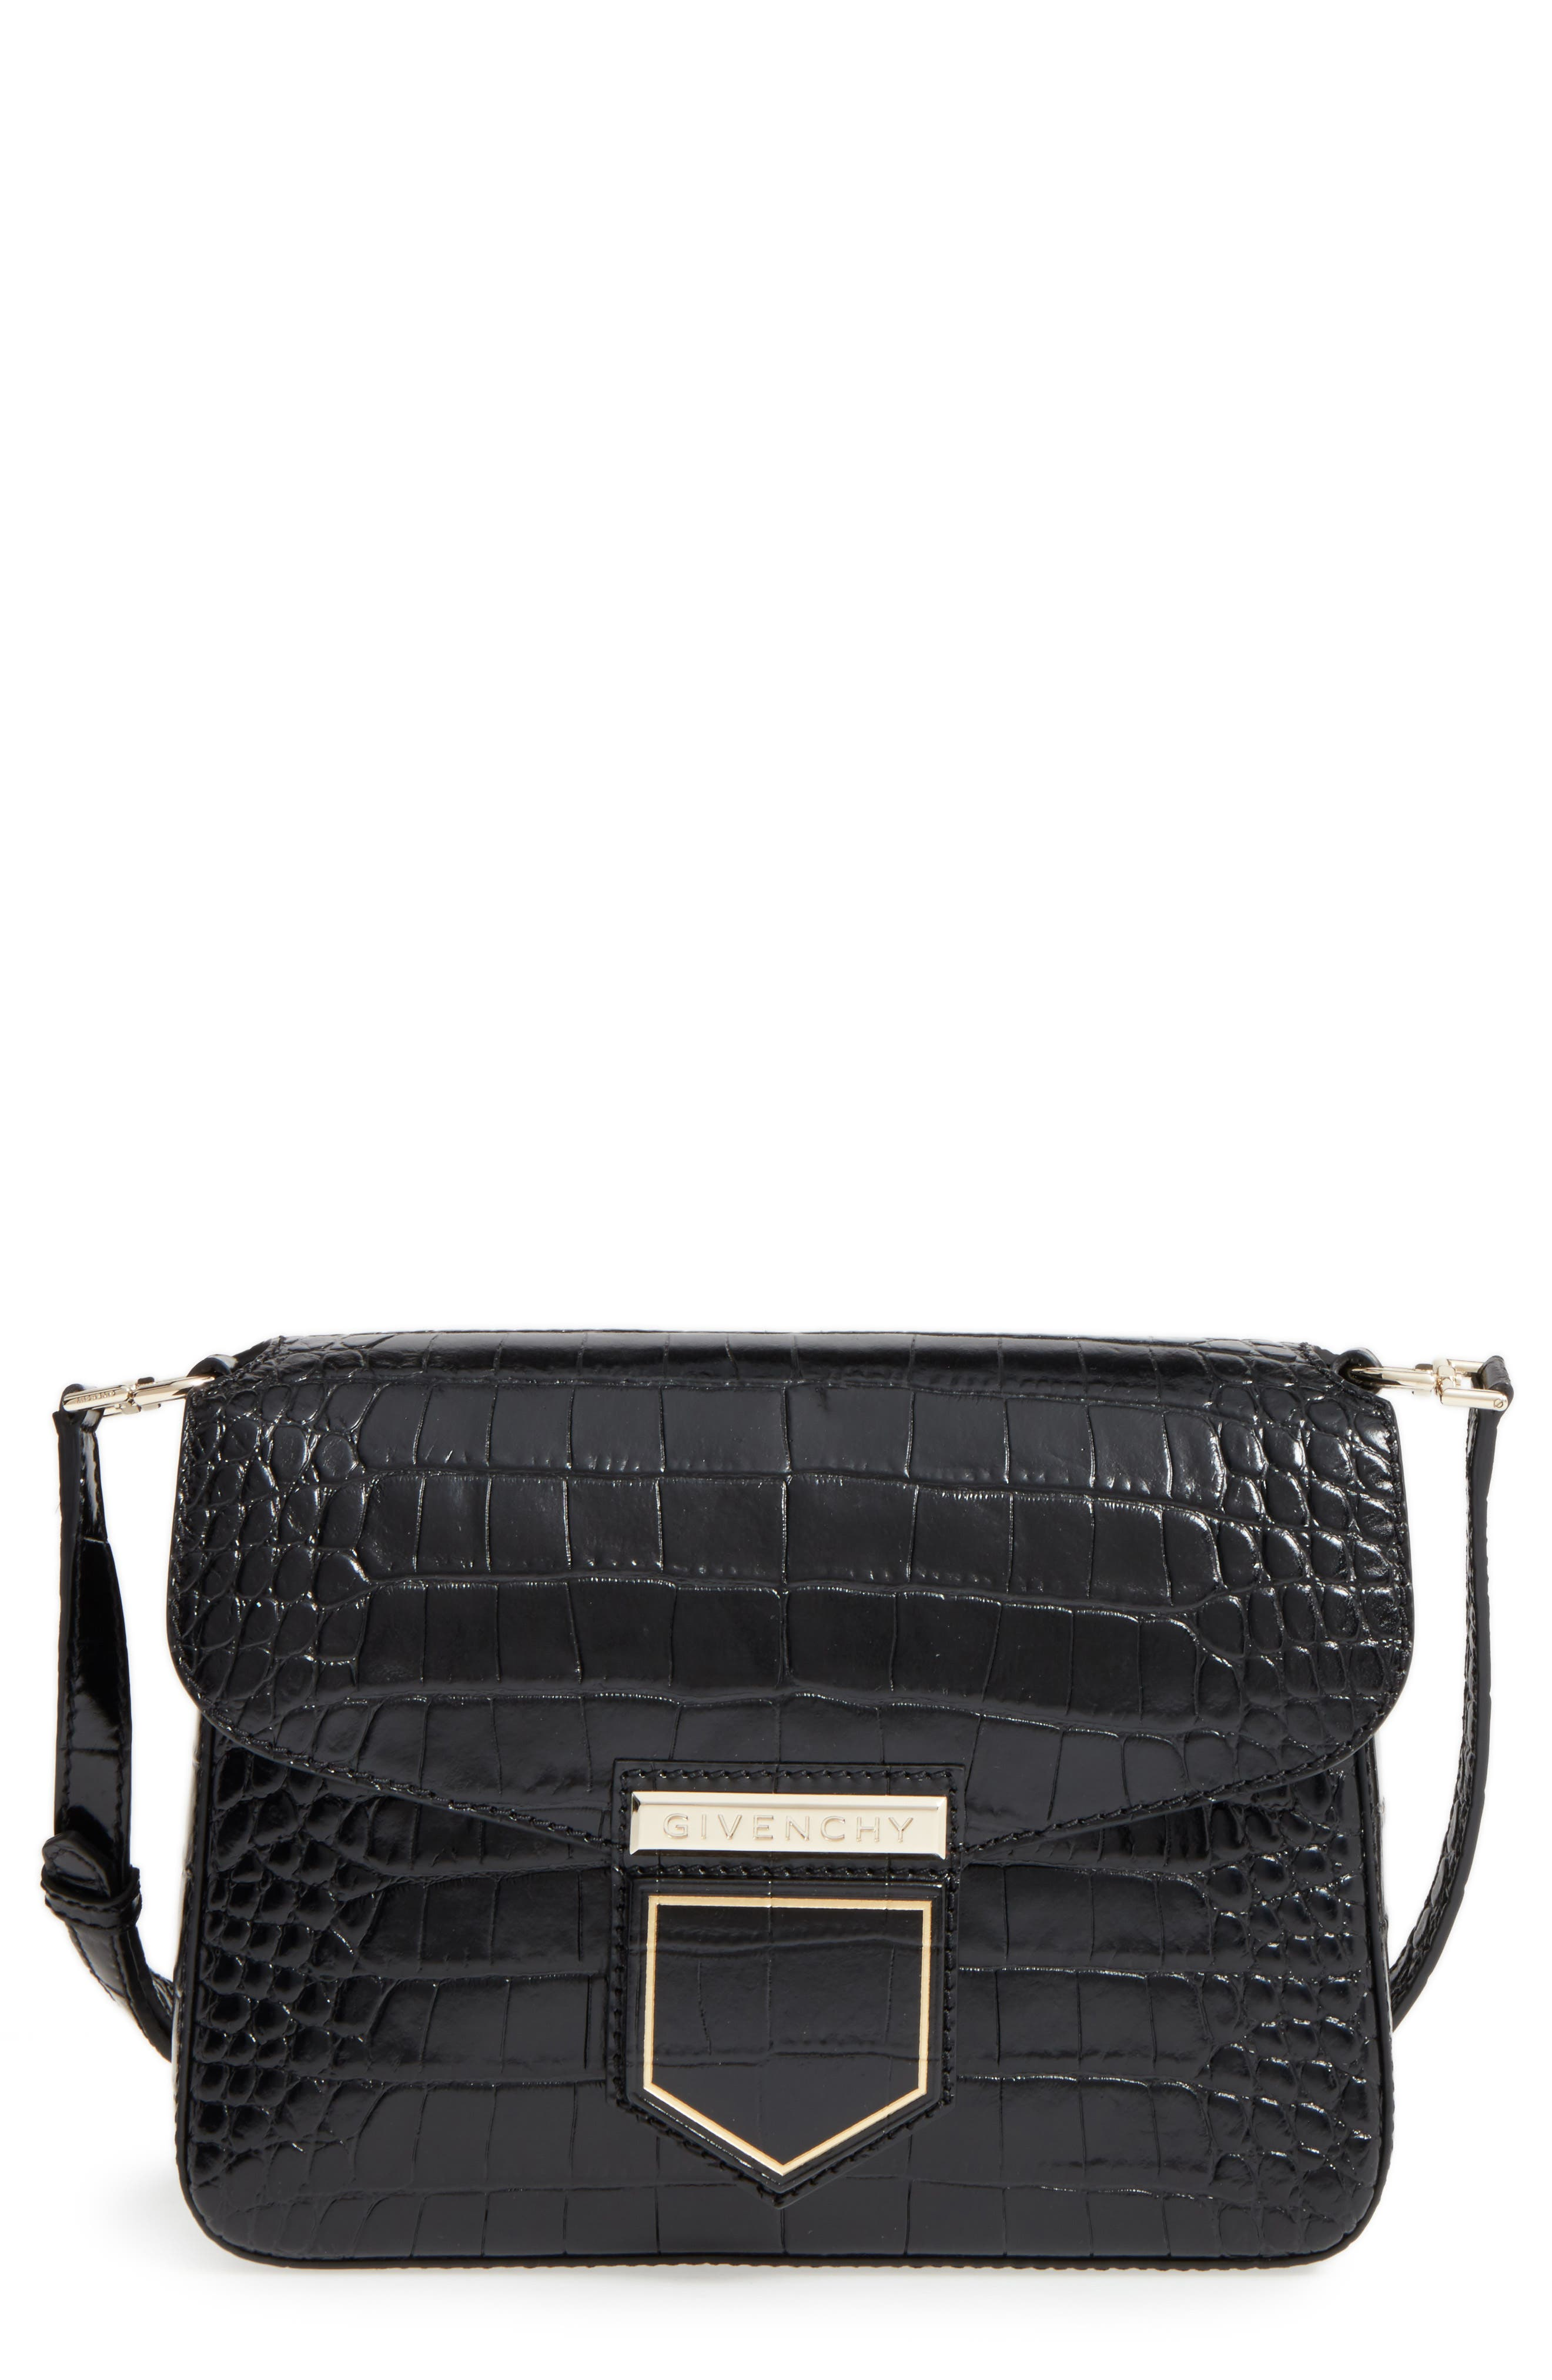 Givenchy Small Nobile Croc Embossed Leather Crossbody Bag